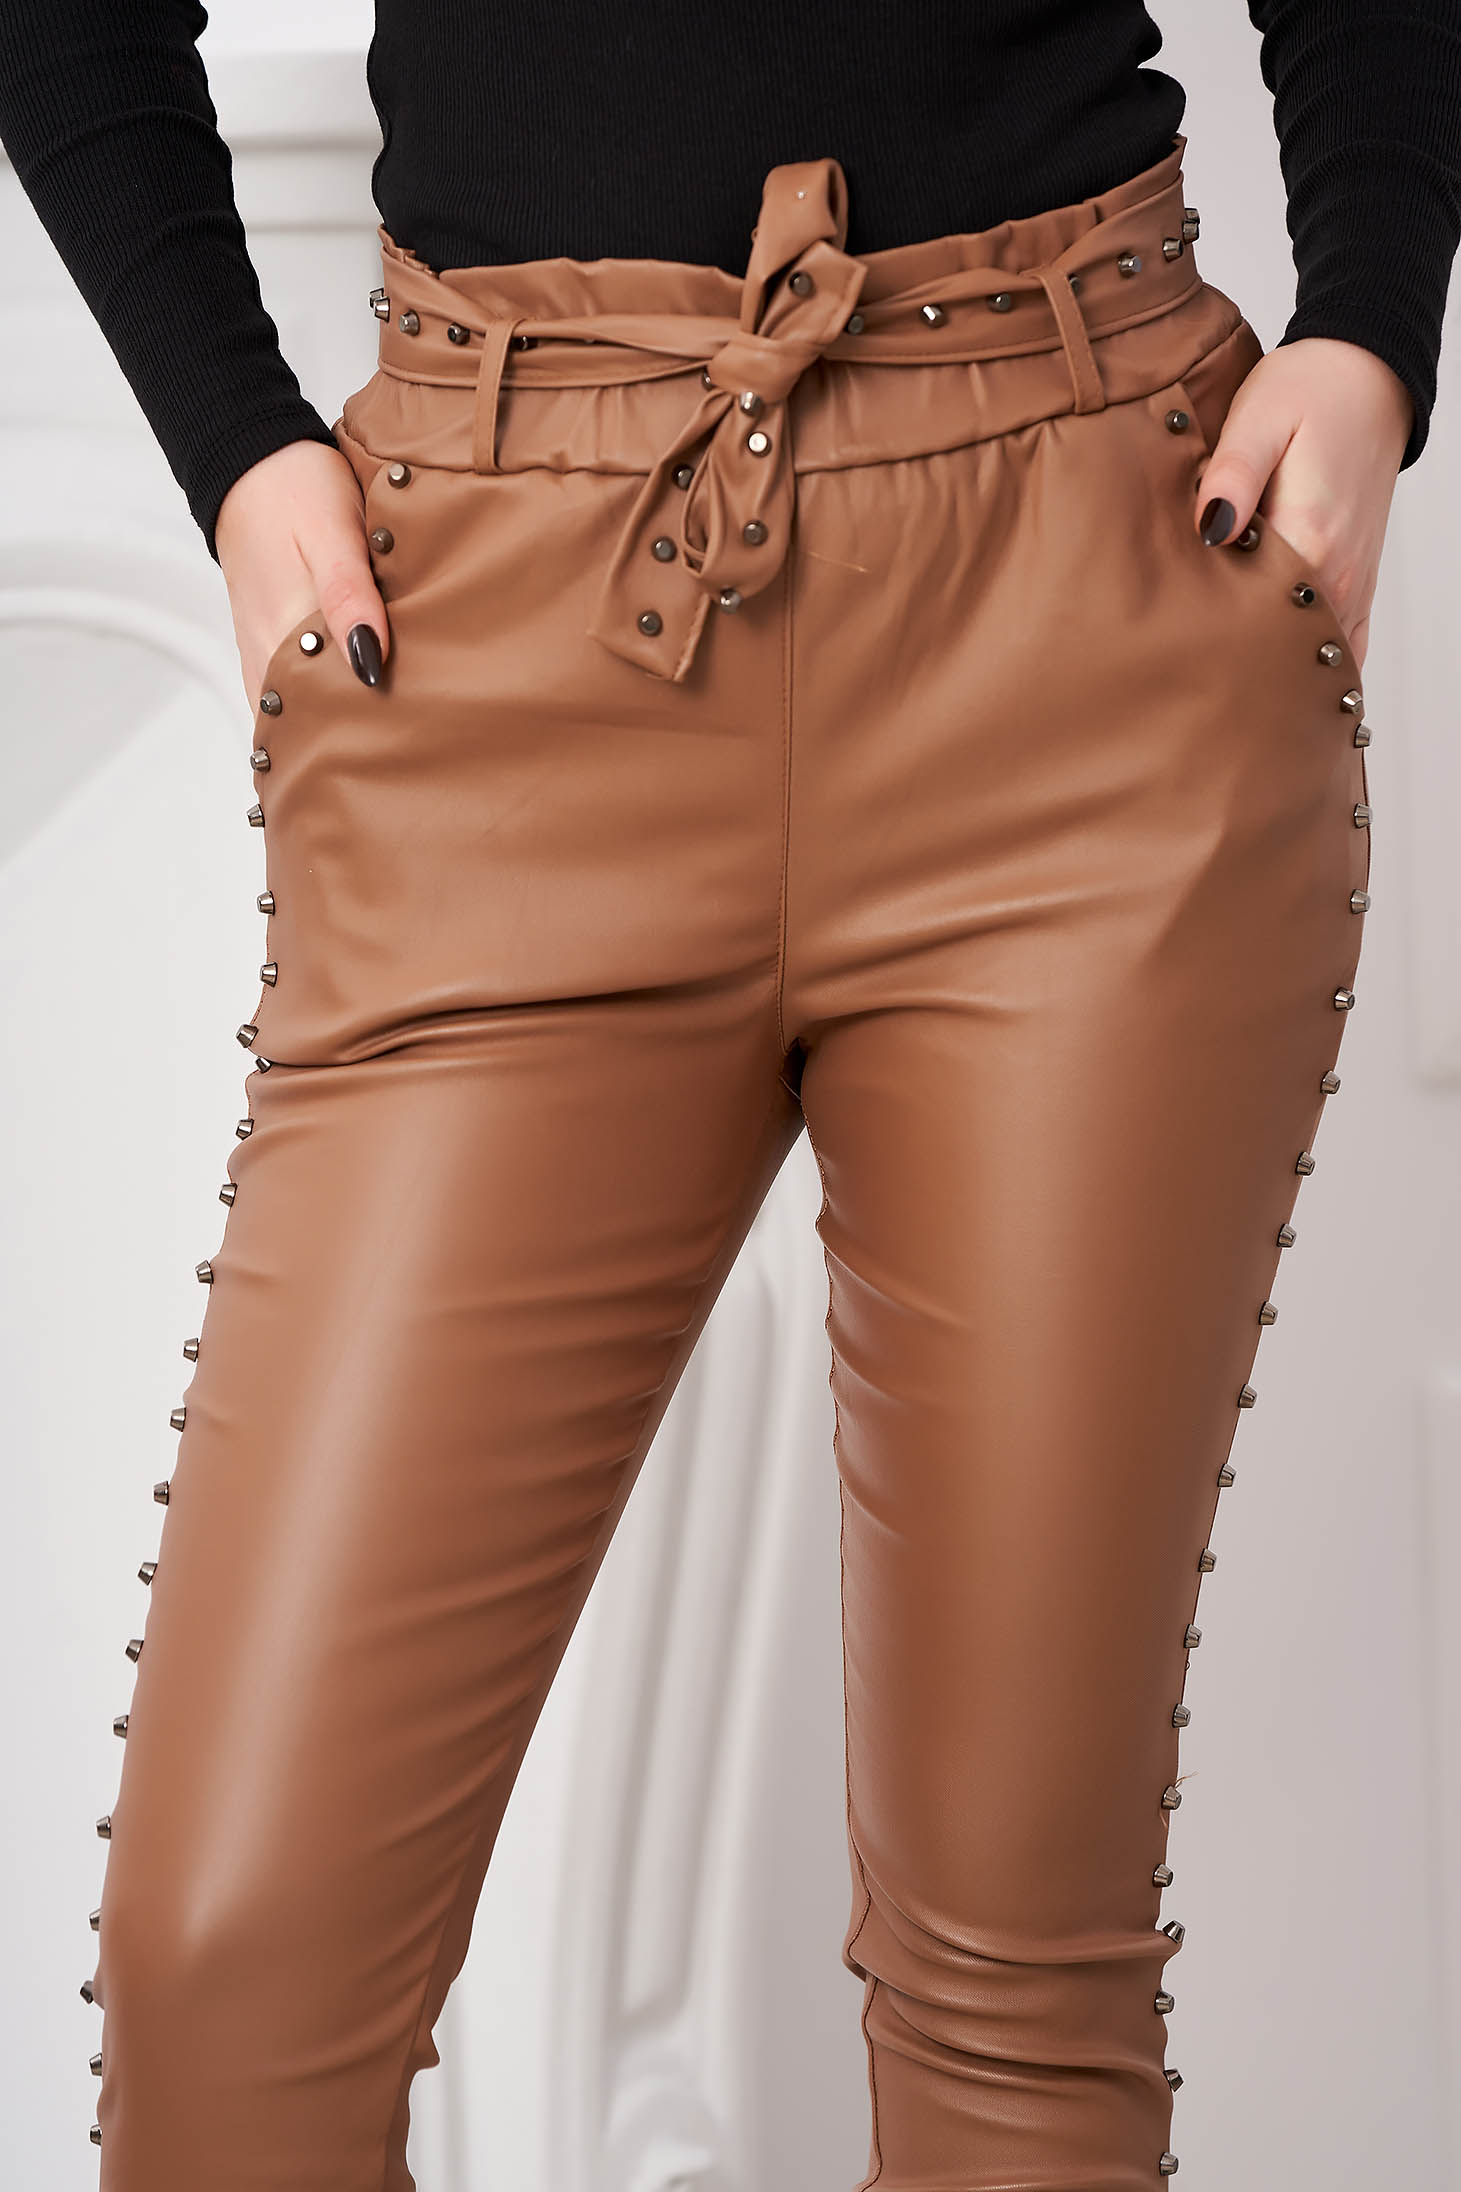 Cappuccino trousers with metallic spikes from ecological leather high waisted with tented cut